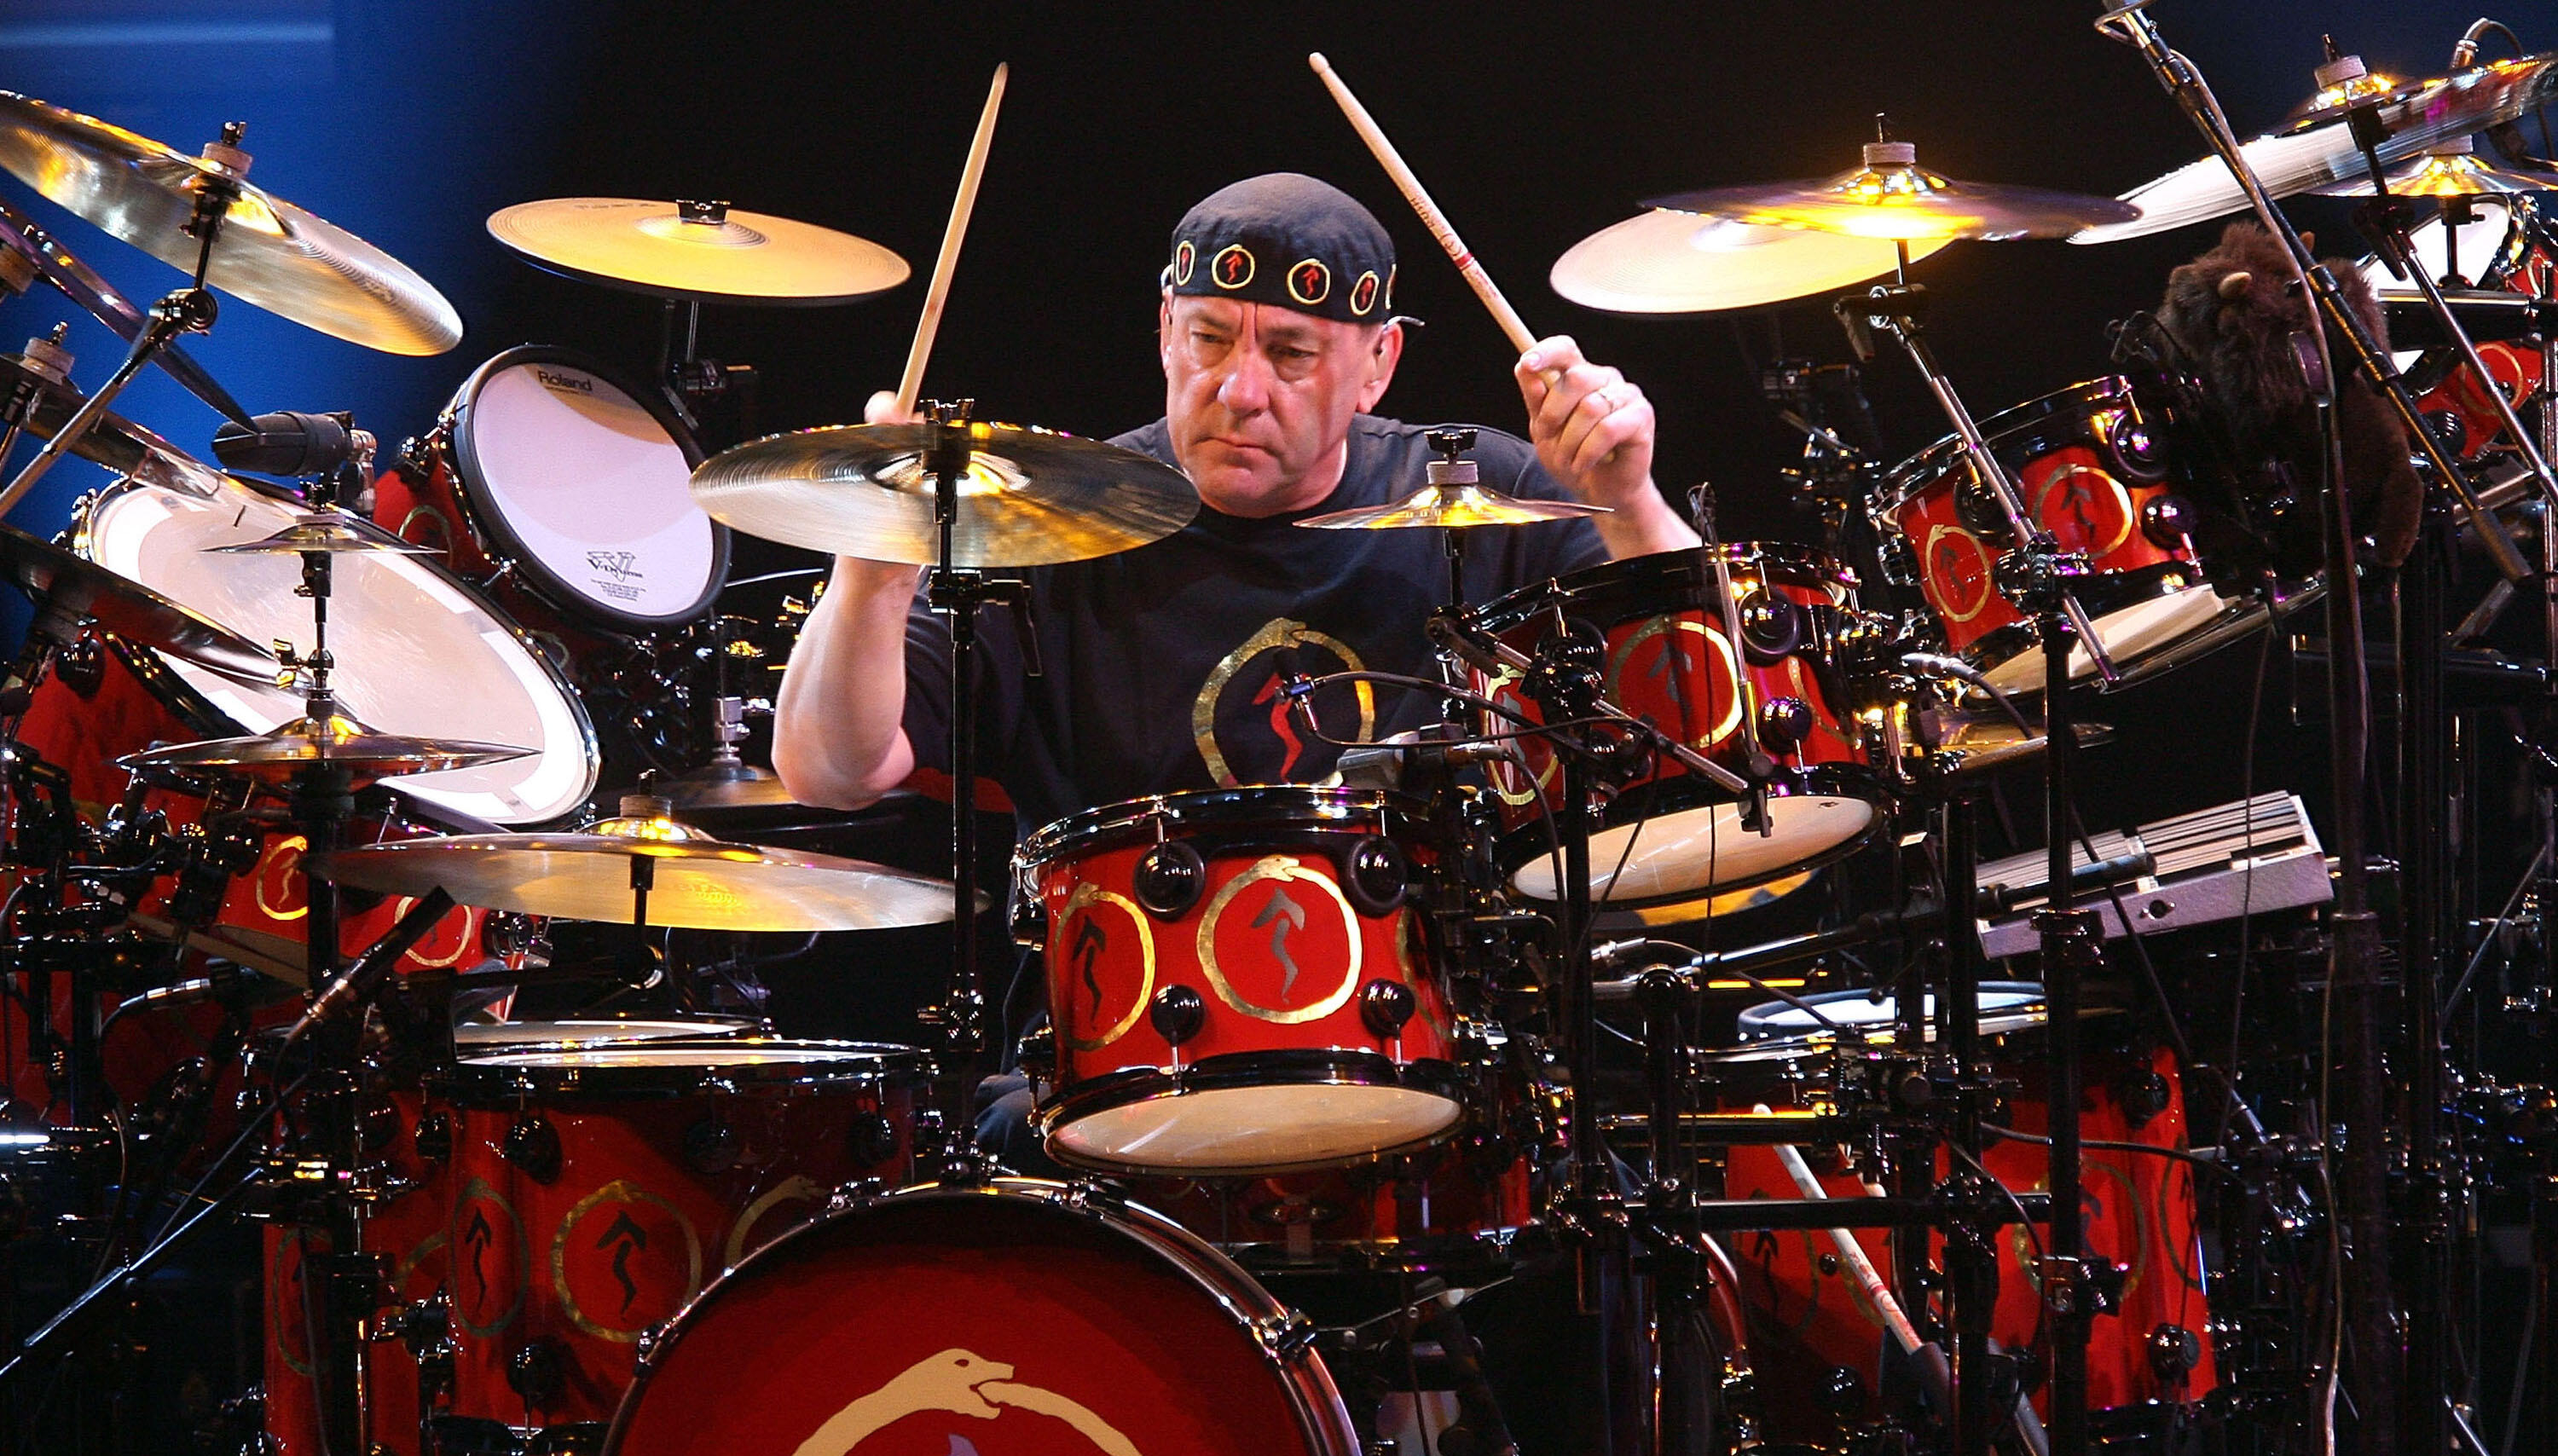 Neil Peart's Hometown To Install Statue Of Him In Park He Made Famous